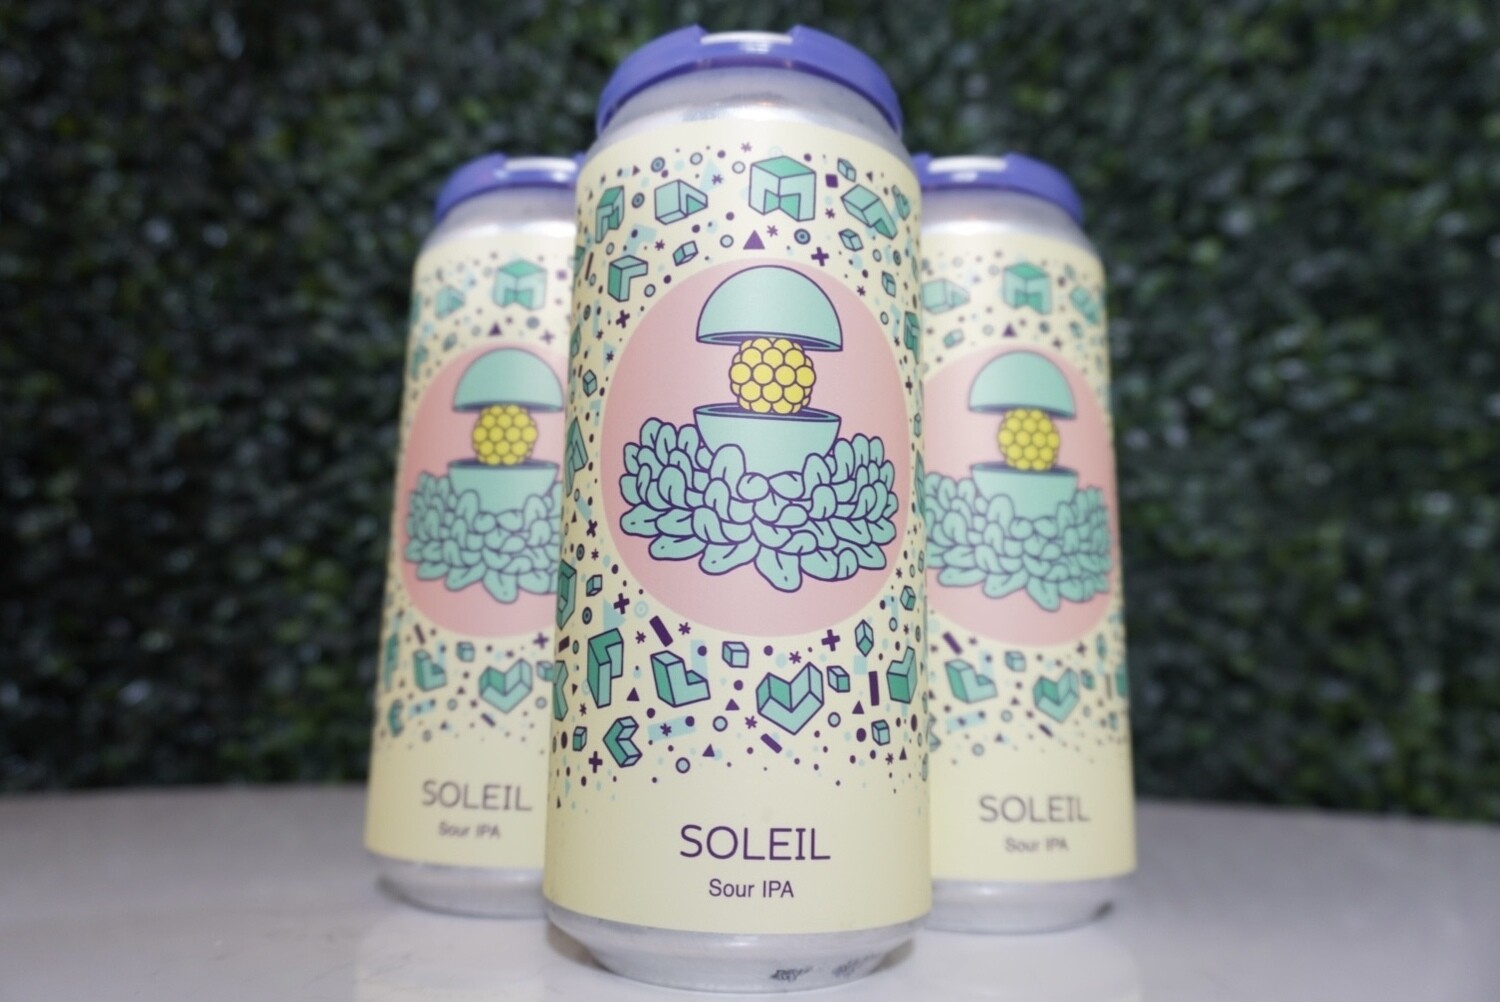 Hudson Valley - Soleil - Sour IPA - 6% ABV - 16oz Can